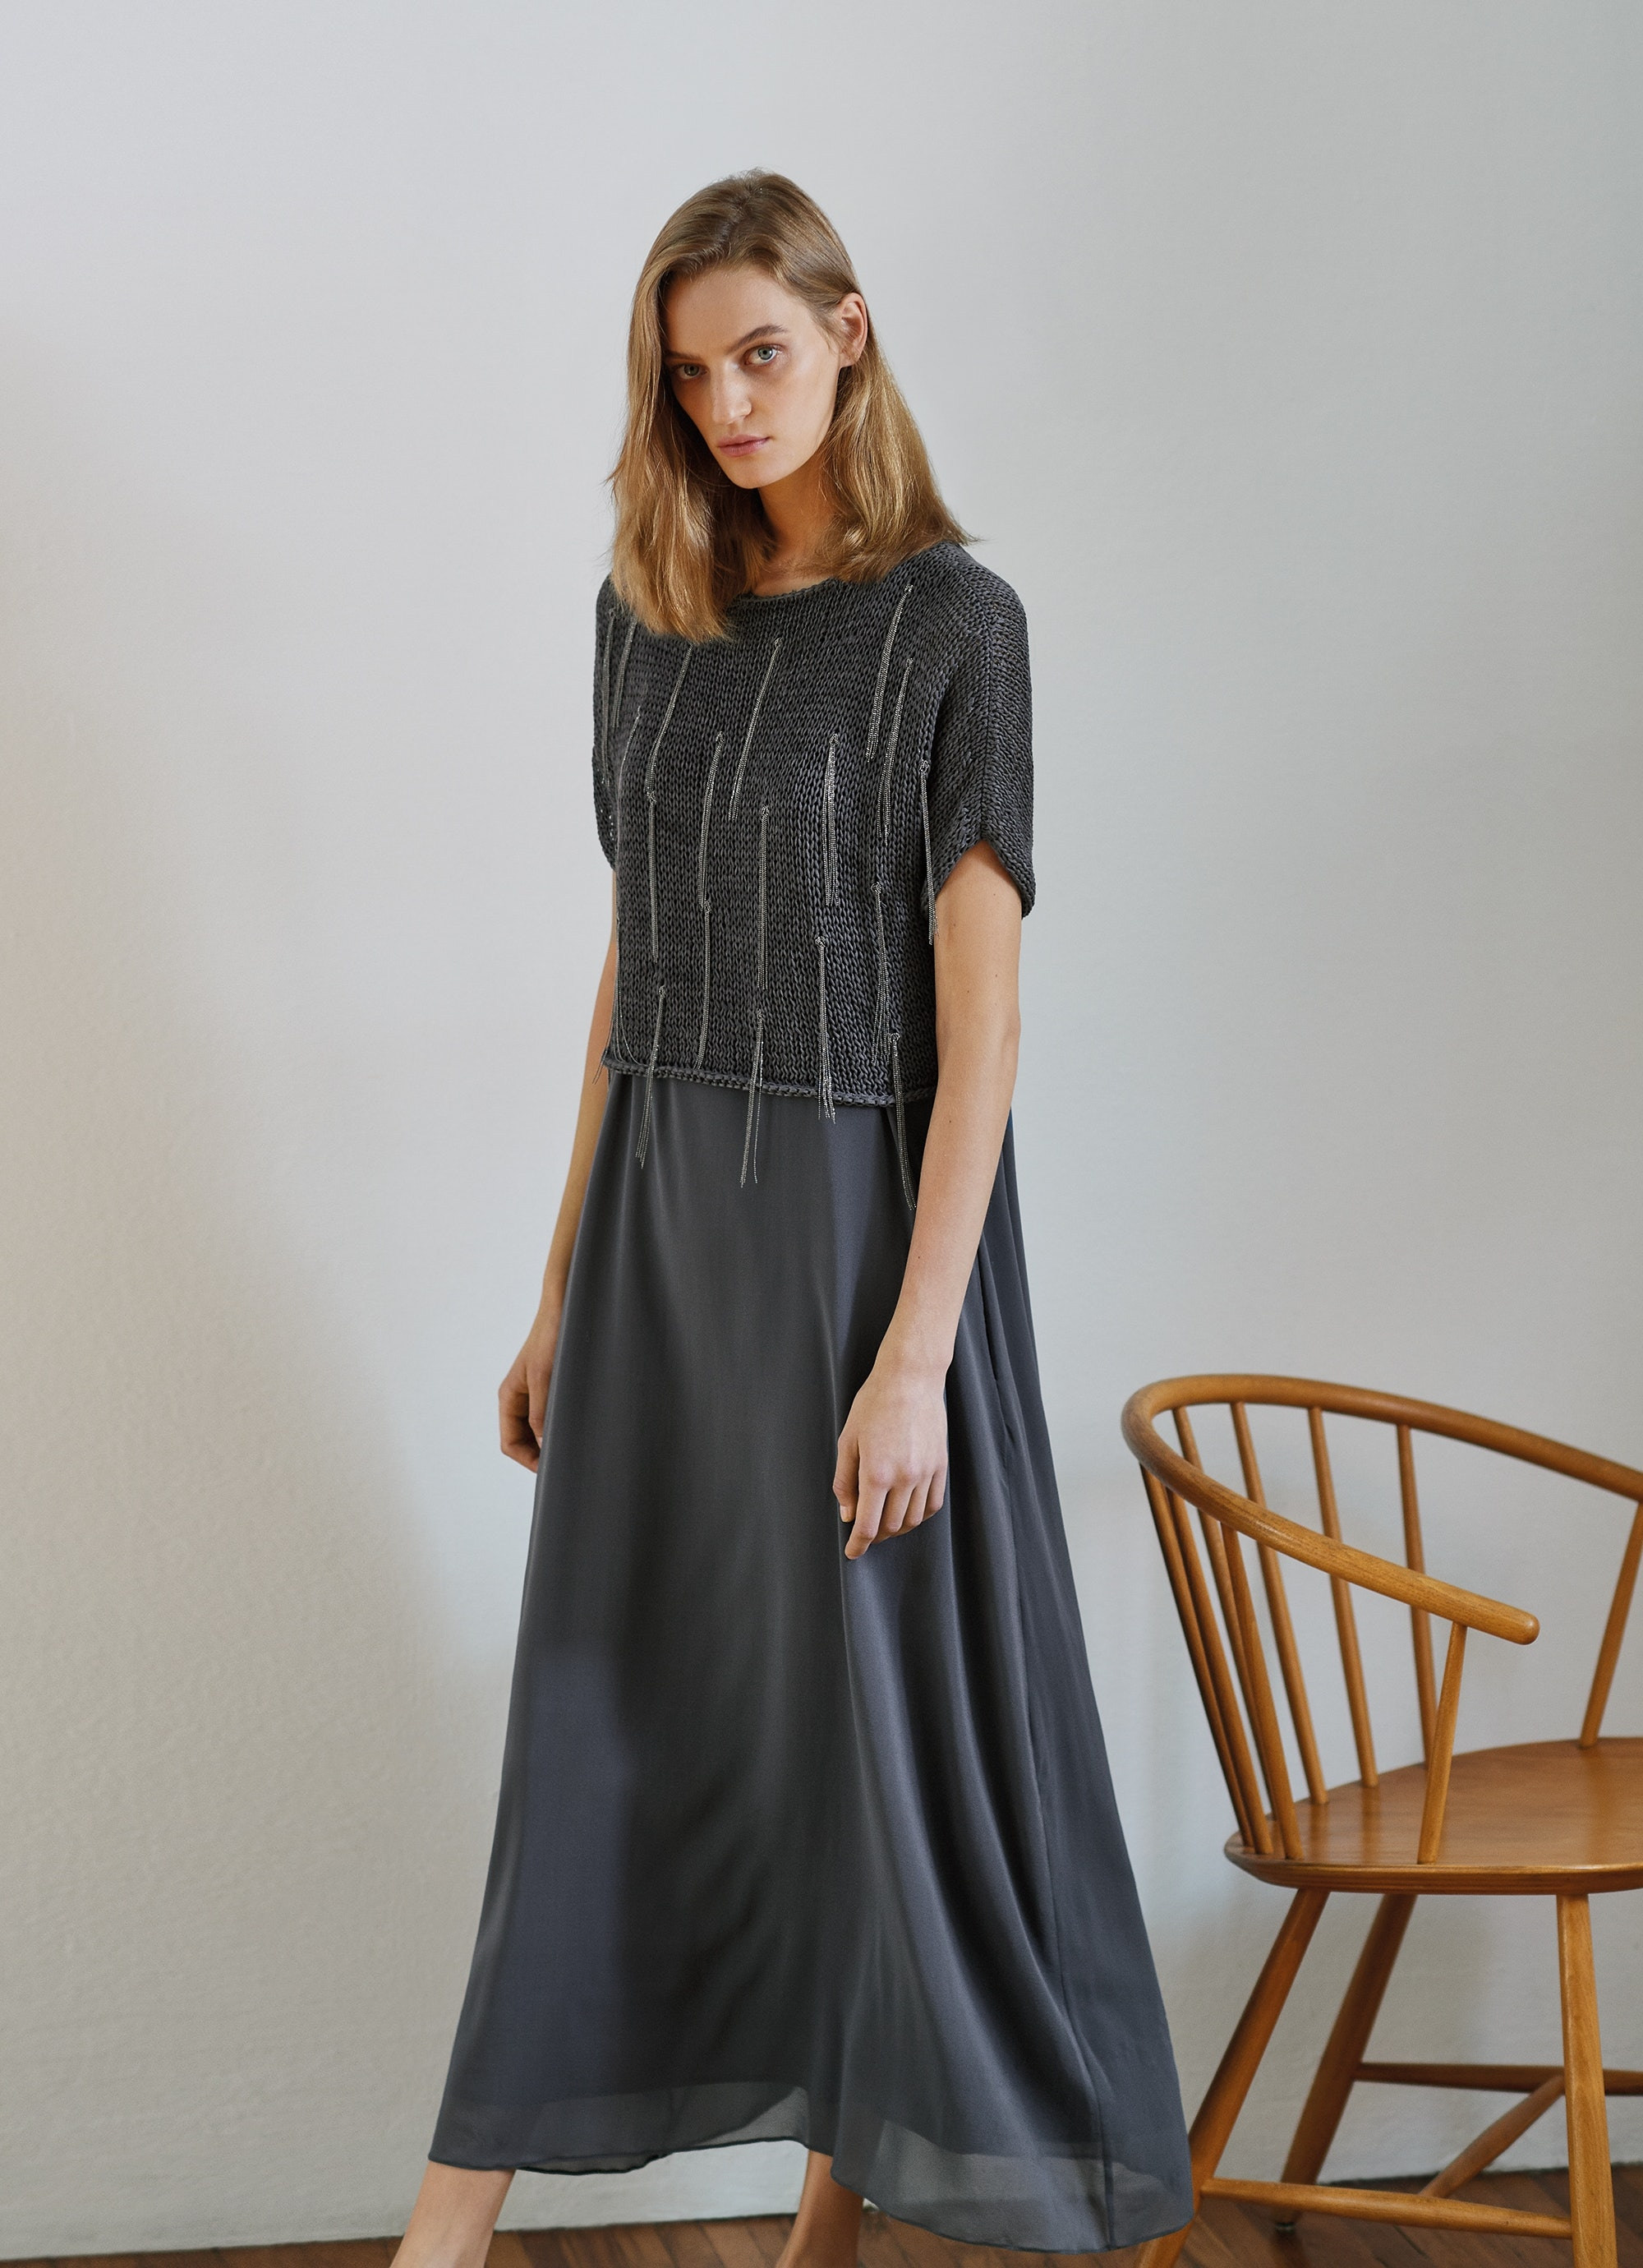 Fabiana Filippi, Spring / Summer Collection 2018, Dress, Lodenfrey, Munich